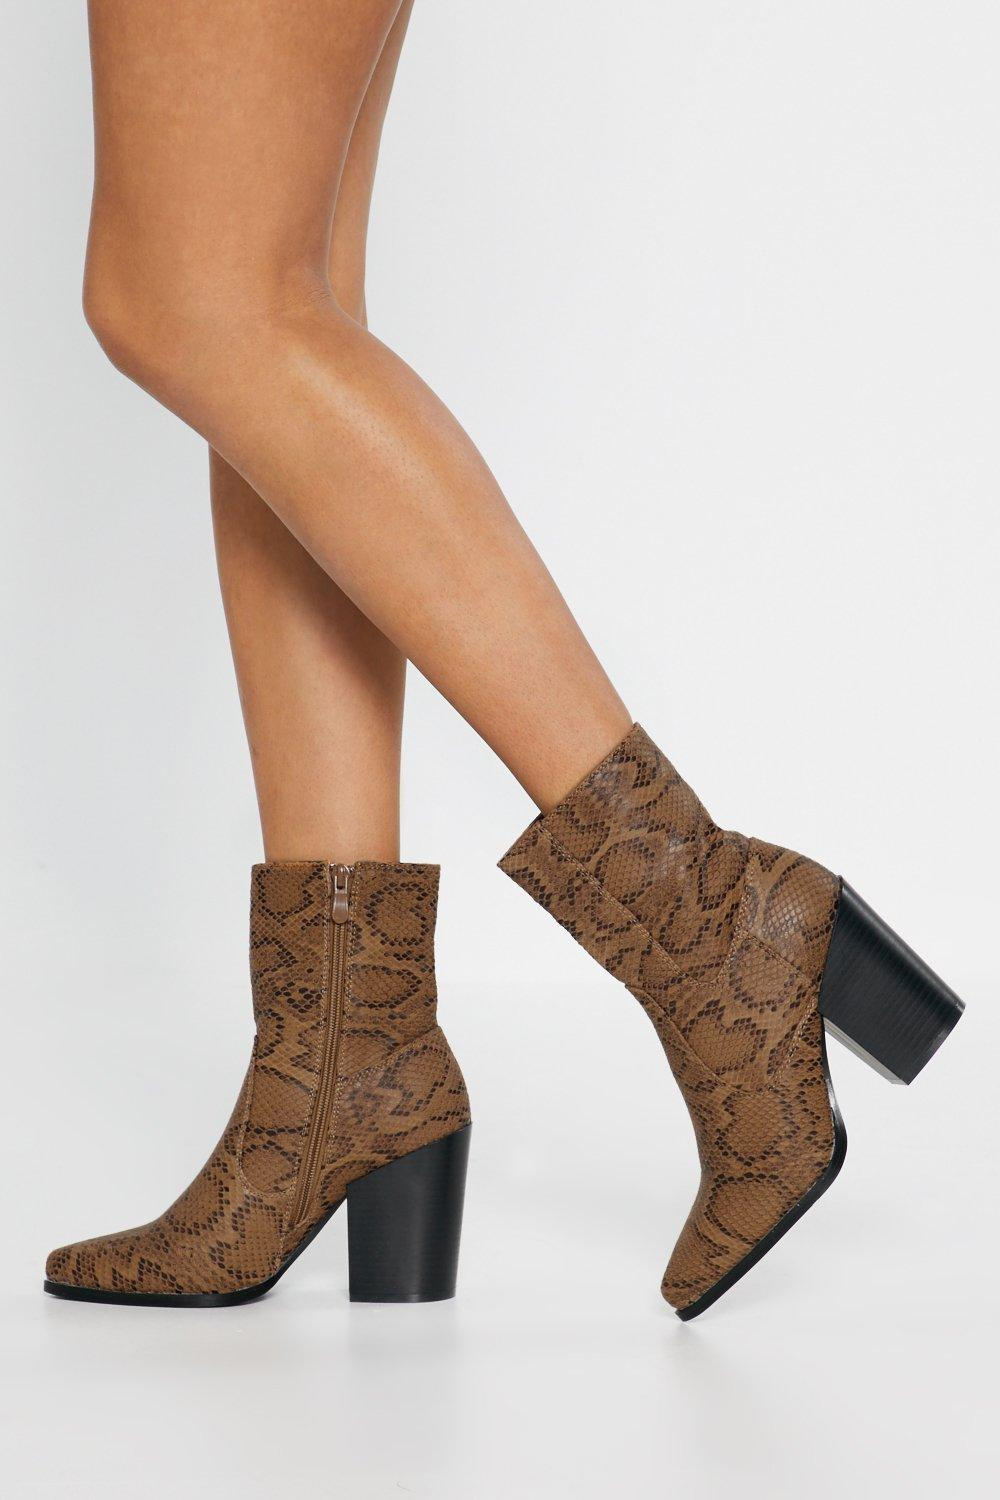 Snake Print Heeled Boots by Nasty Gal